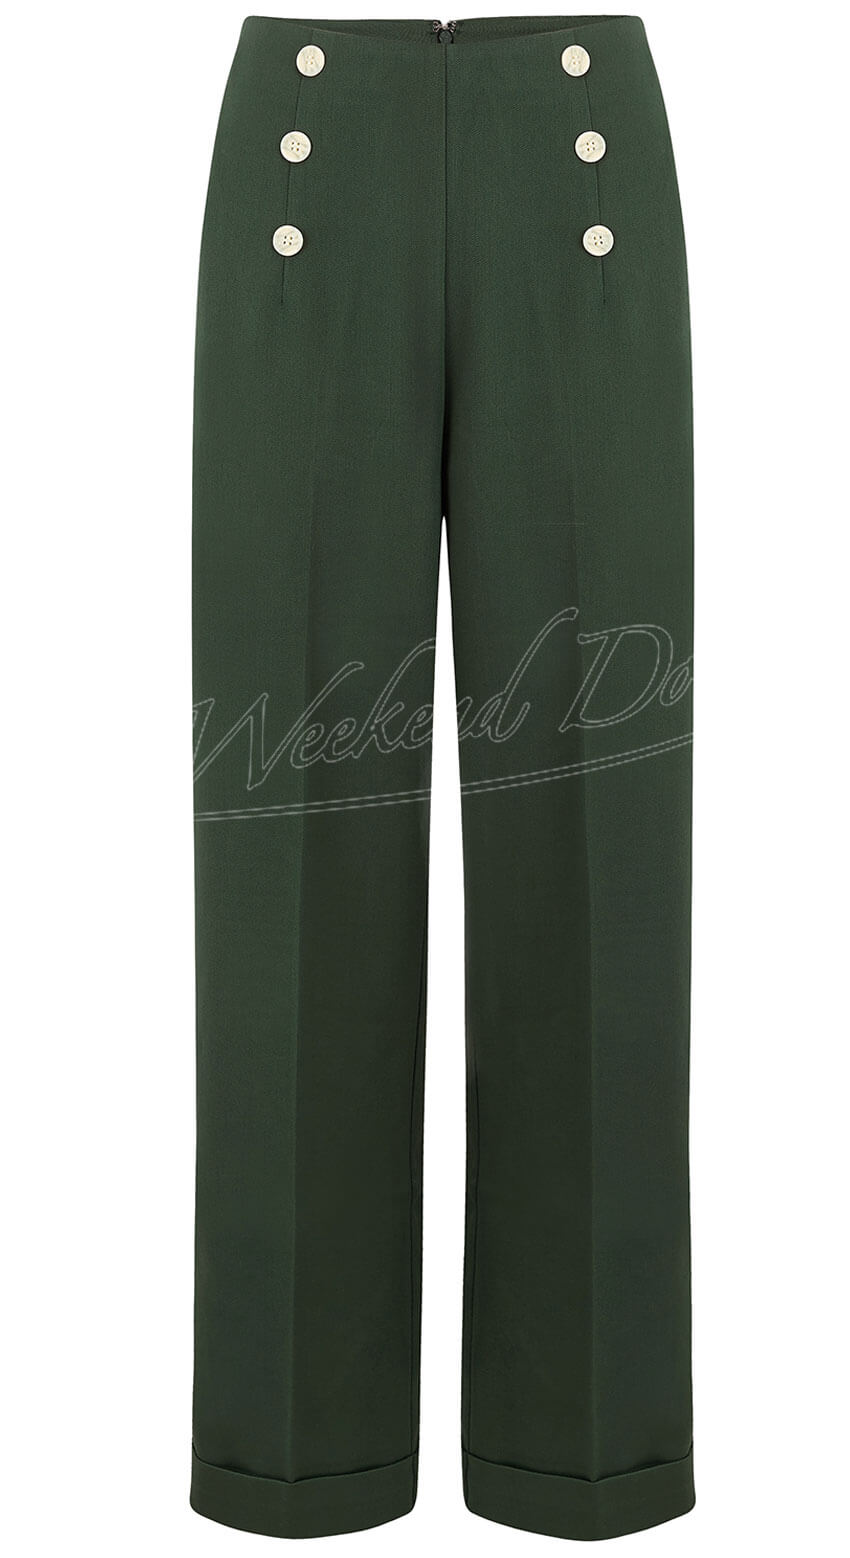 Banned Vintage inspired high waisted forest green wide leg trousers | 1940s style